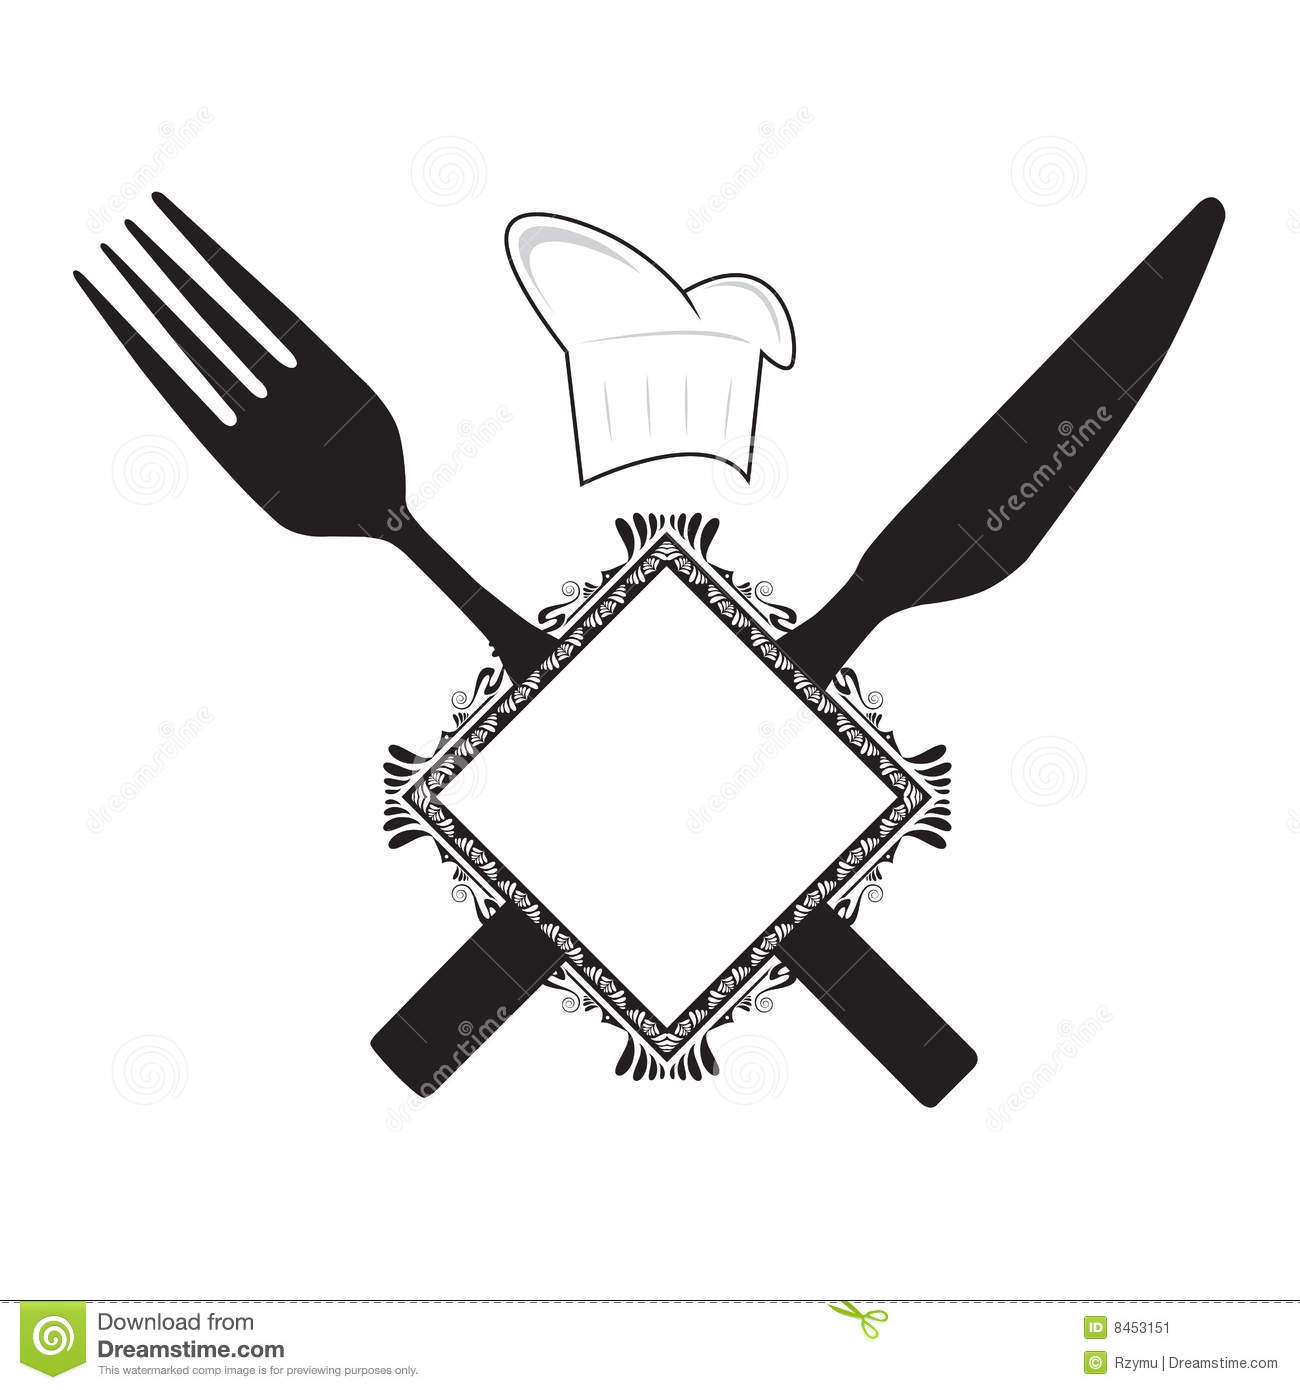 Fork Knife And Chef Hat Stock Image   Image  8453151